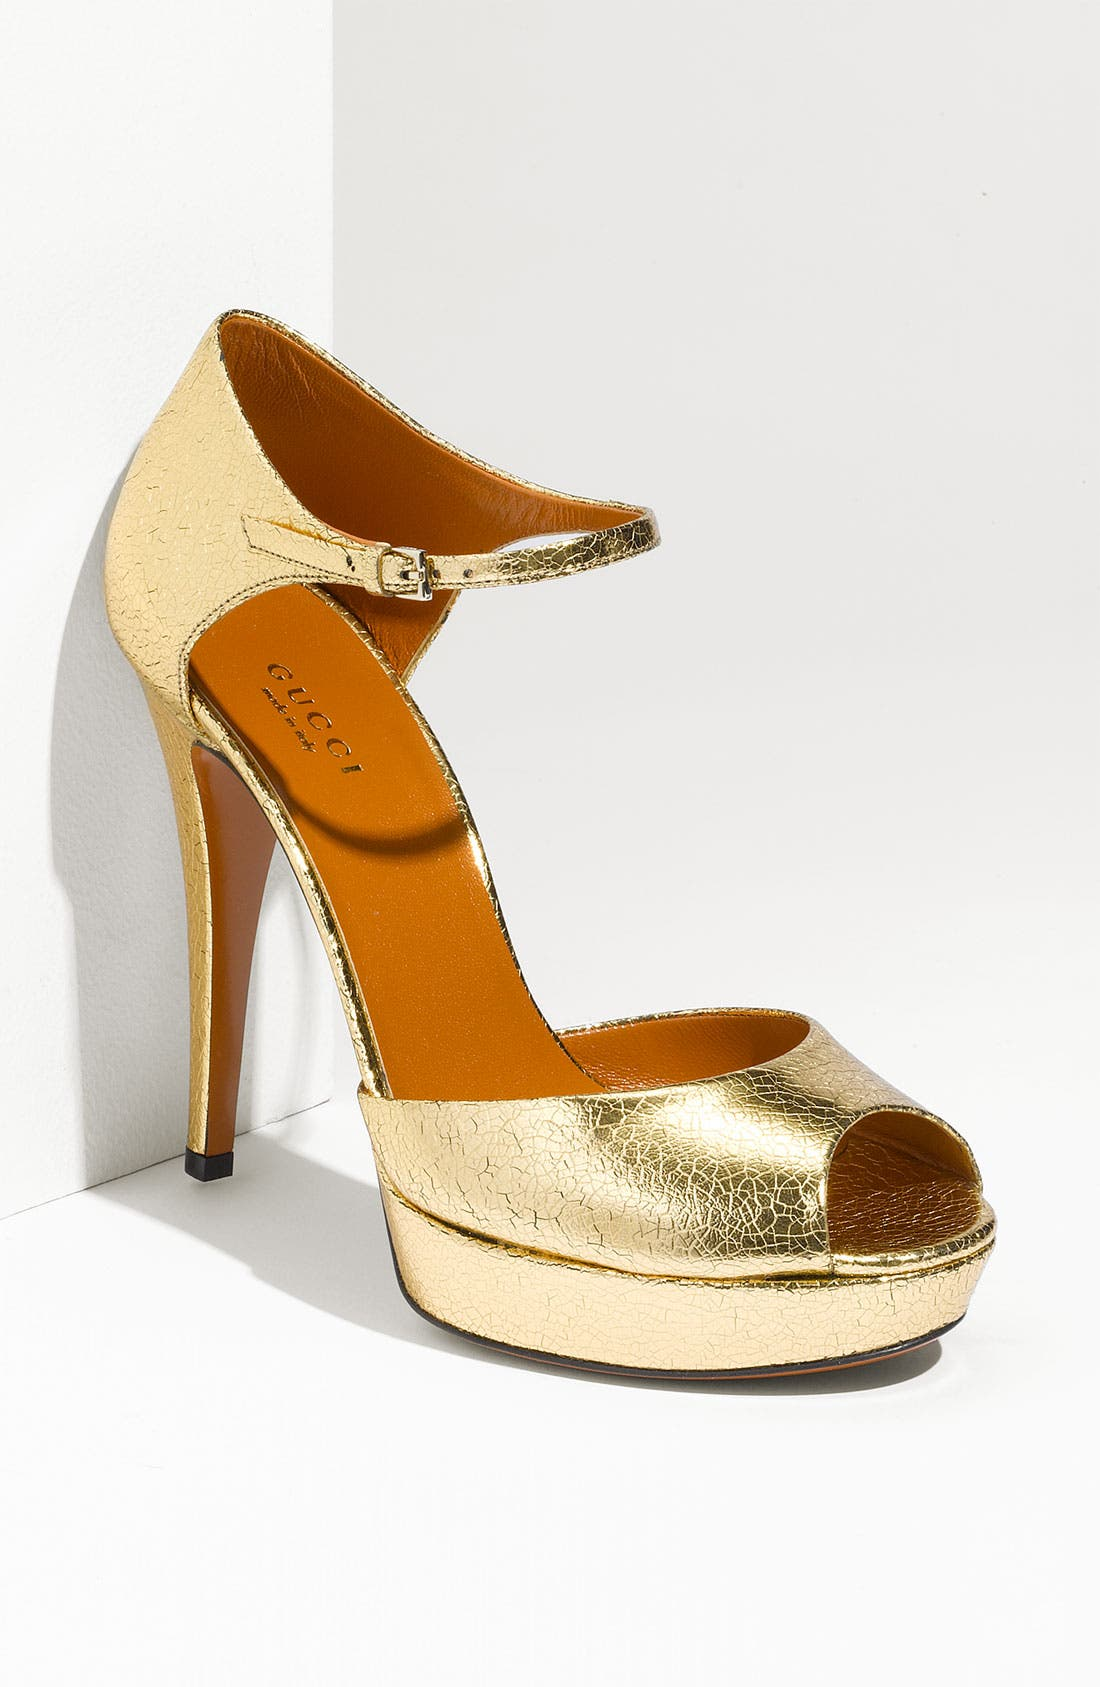 Main Image - Gucci Ankle Strap Peep Toe Pump